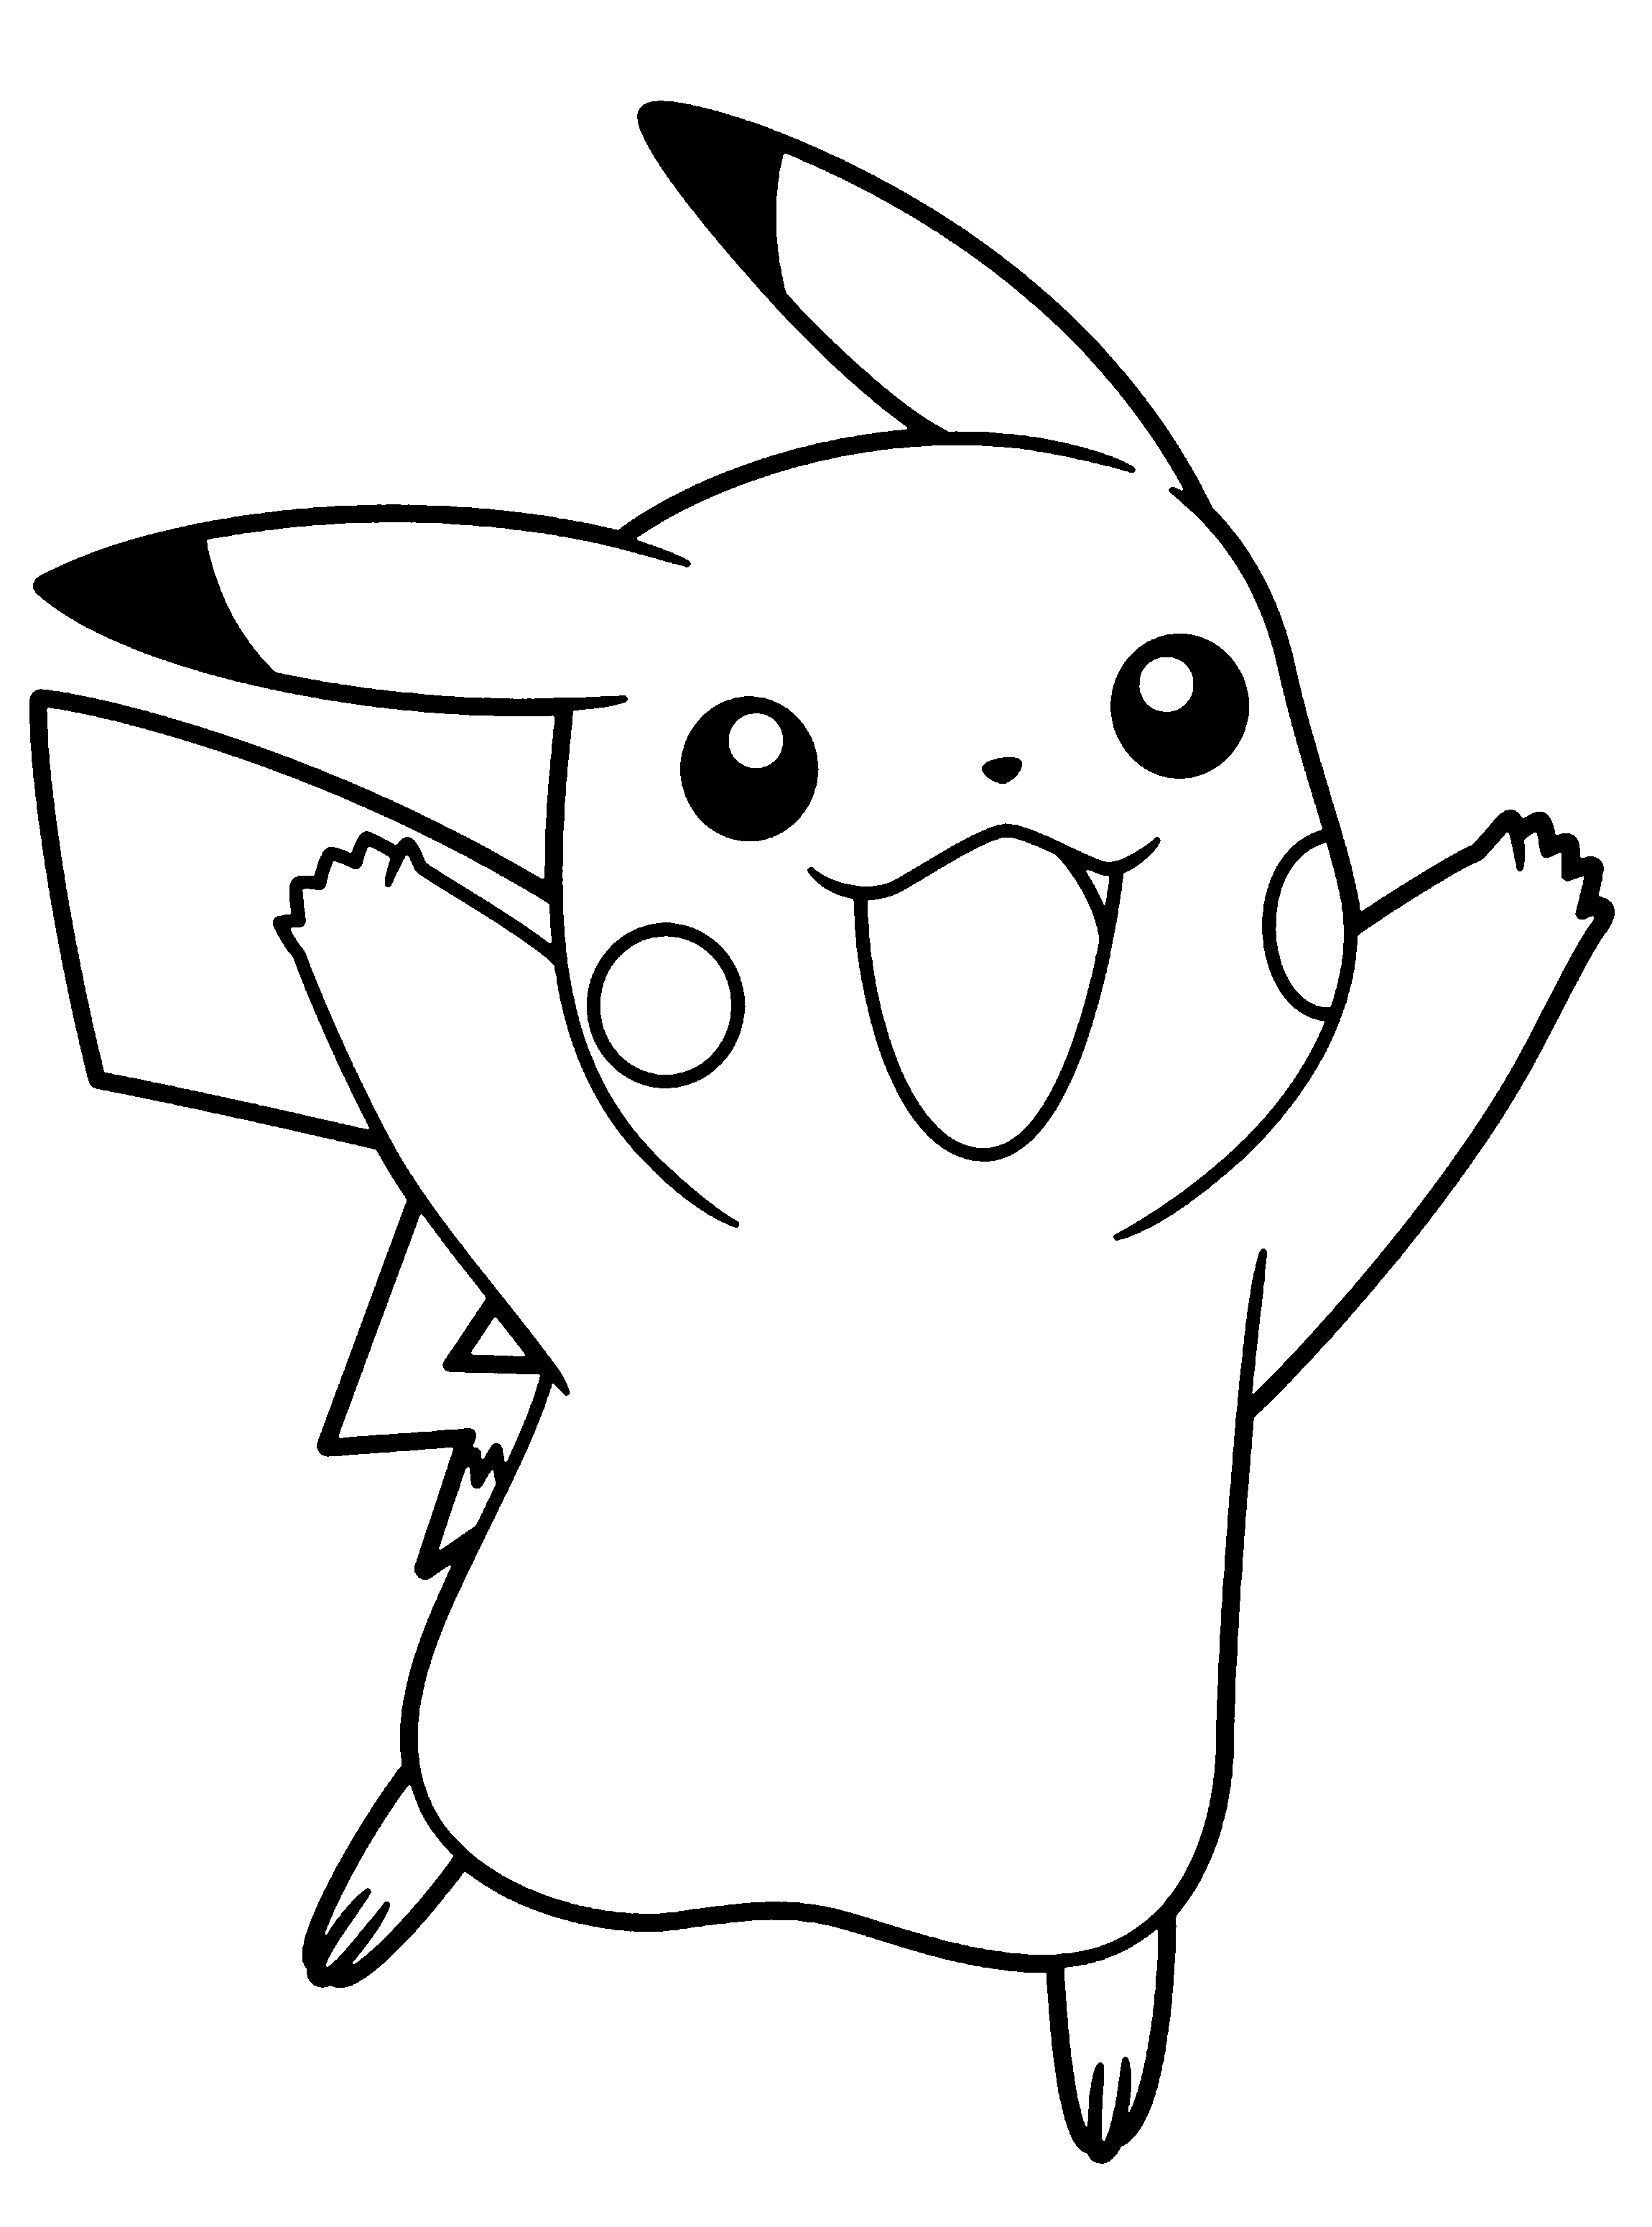 coloring pages for pokemon einzigartig pokemon ausmalbilder yveltal top kostenlos pages coloring pokemon for